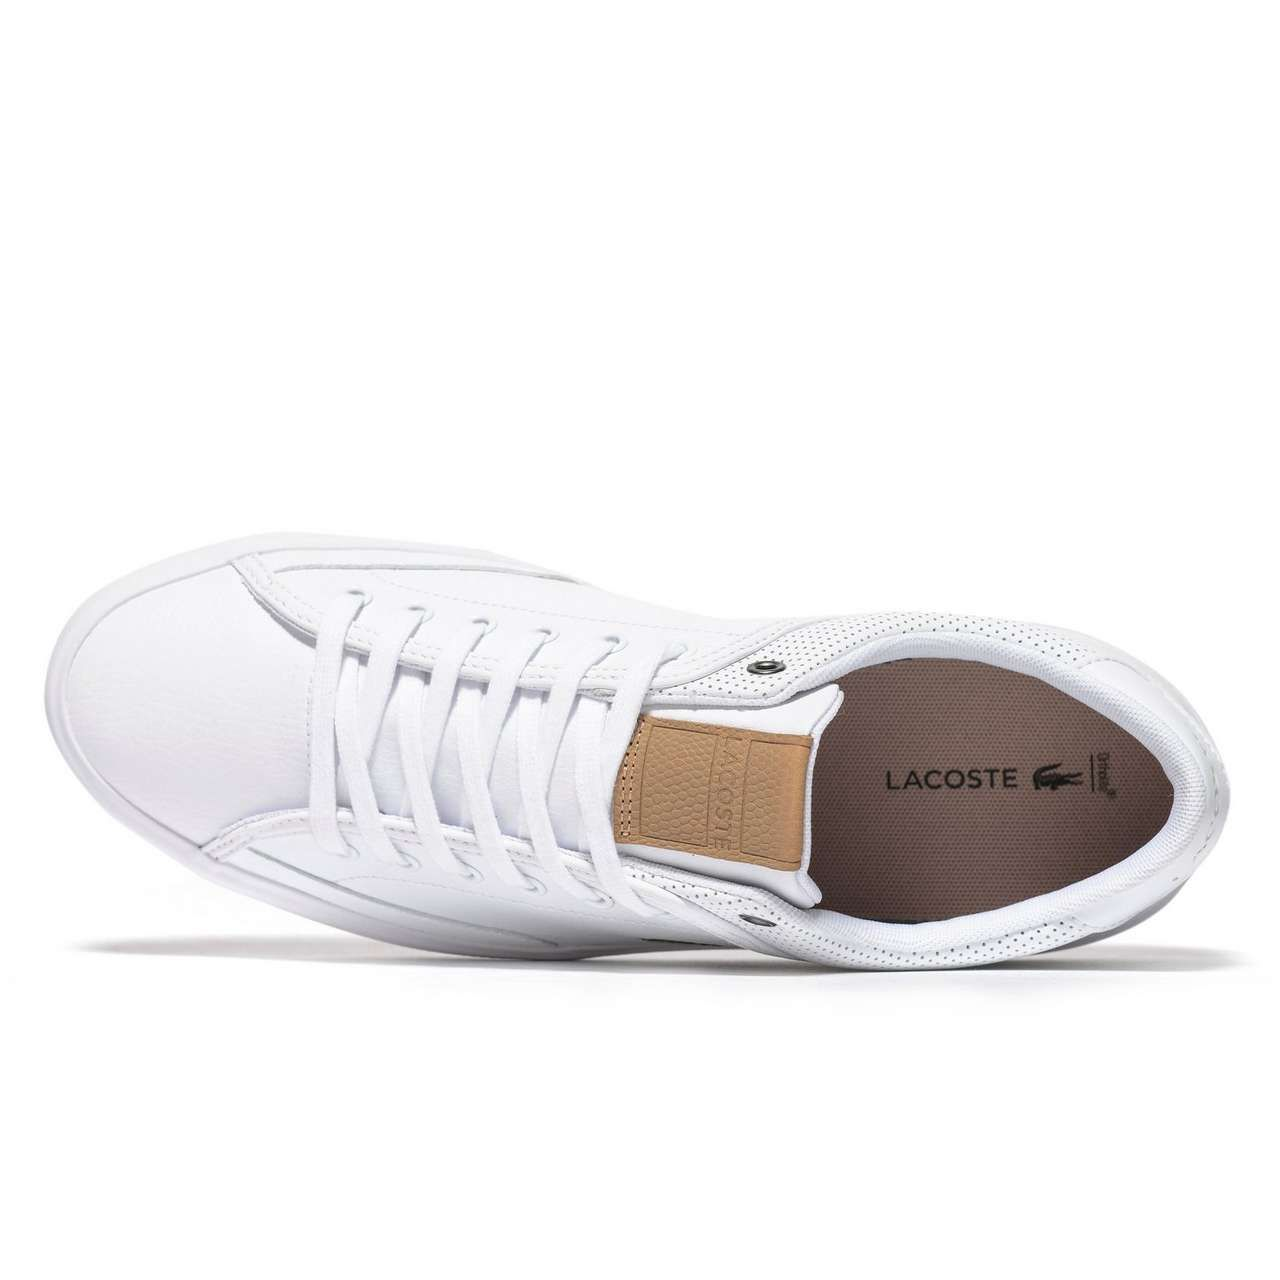 Lacoste Angha 217 | Lacoste, Retail